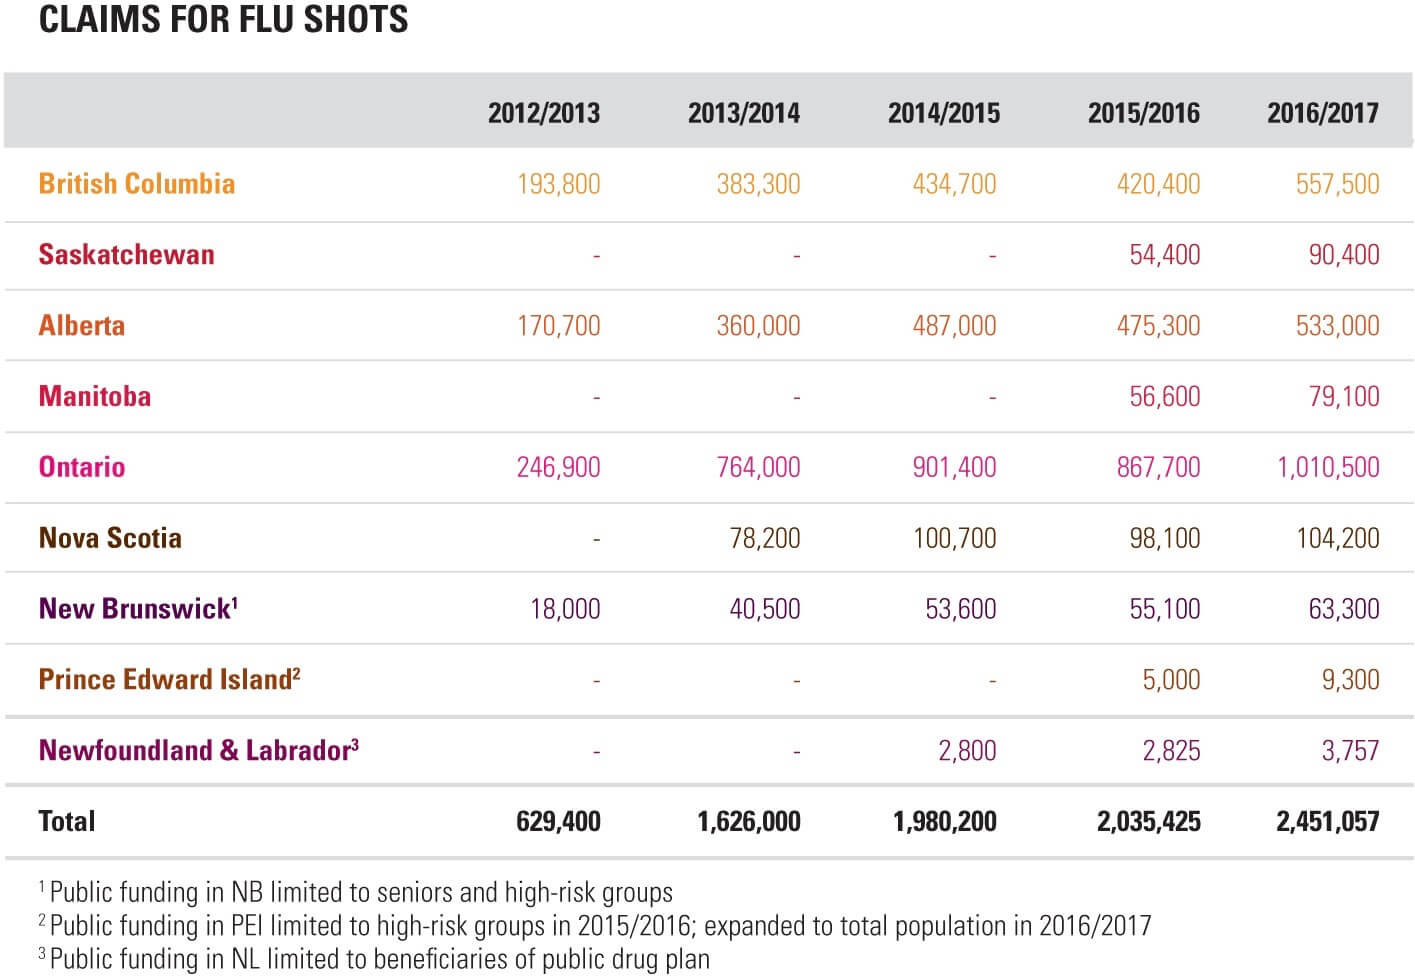 Flu_shot_claims_Nov_2017